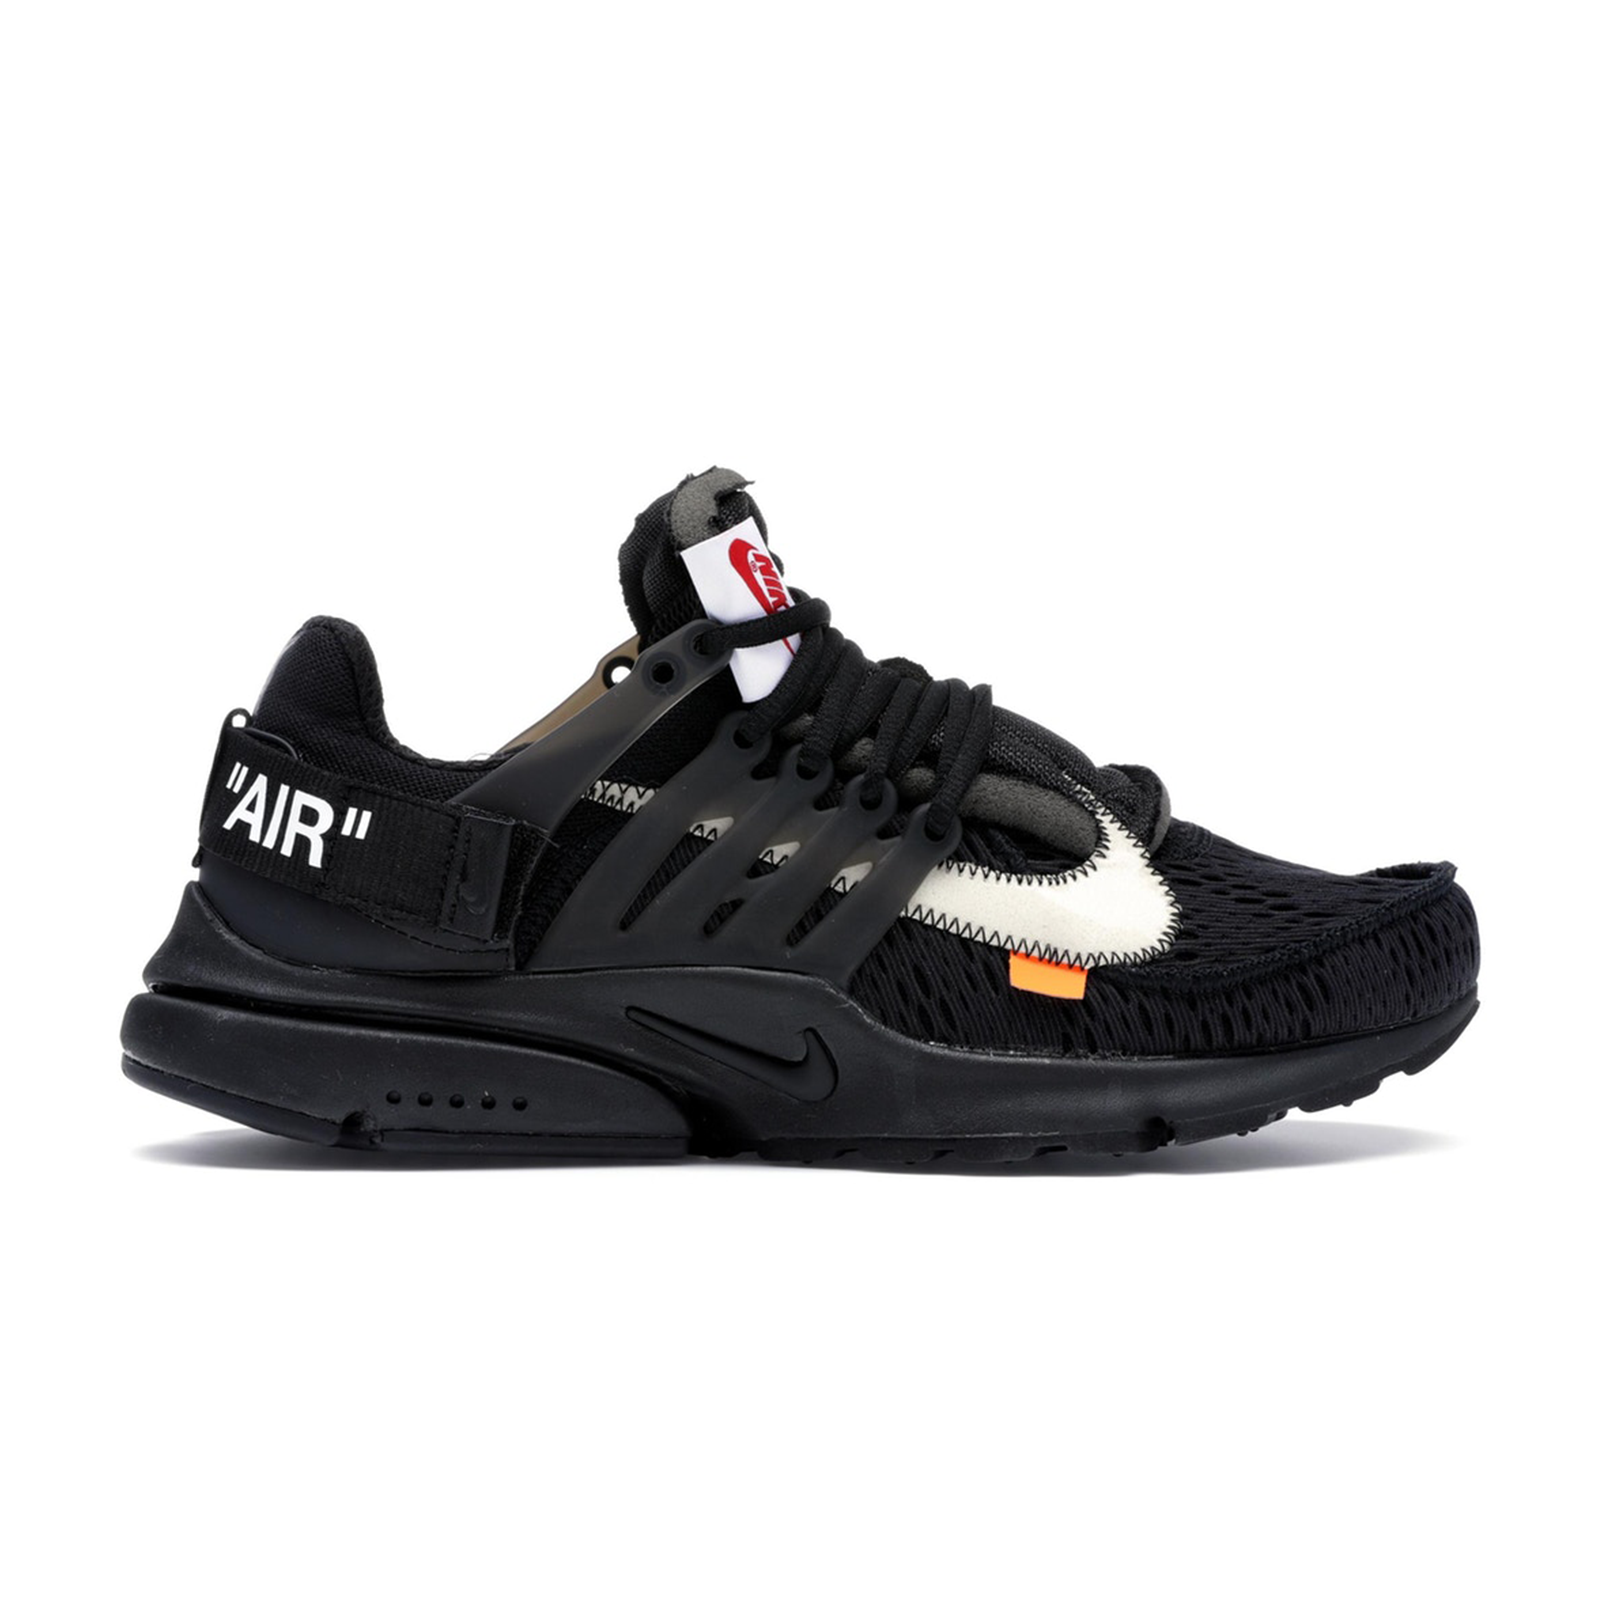 0d1a0bebe11f A Definitive Ranking of Virgil Abloh s Off-White Nike Collabs    ONE37pm